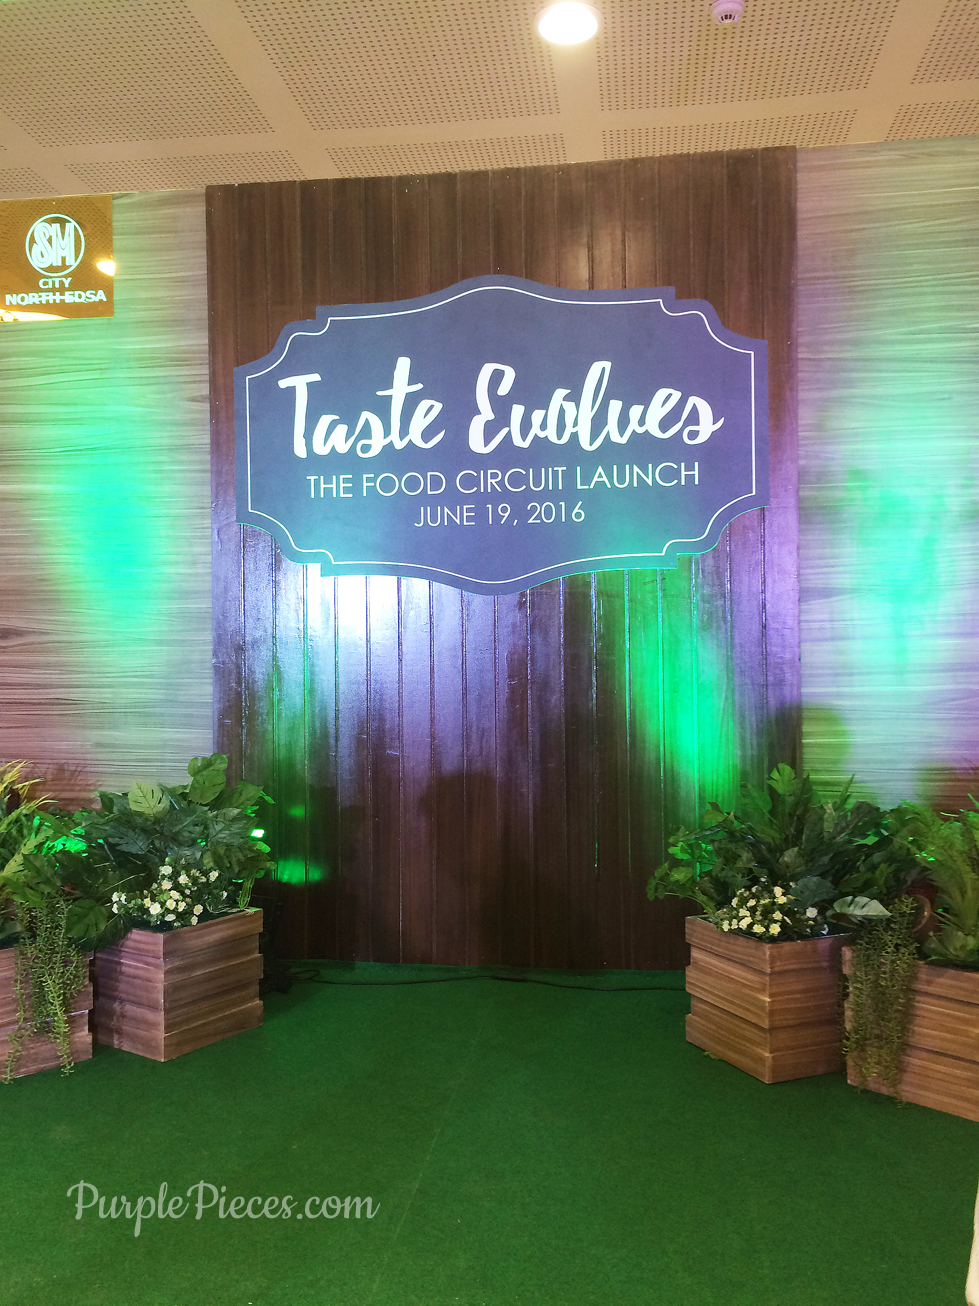 Taste Evolves - The Food Cicuit Launch